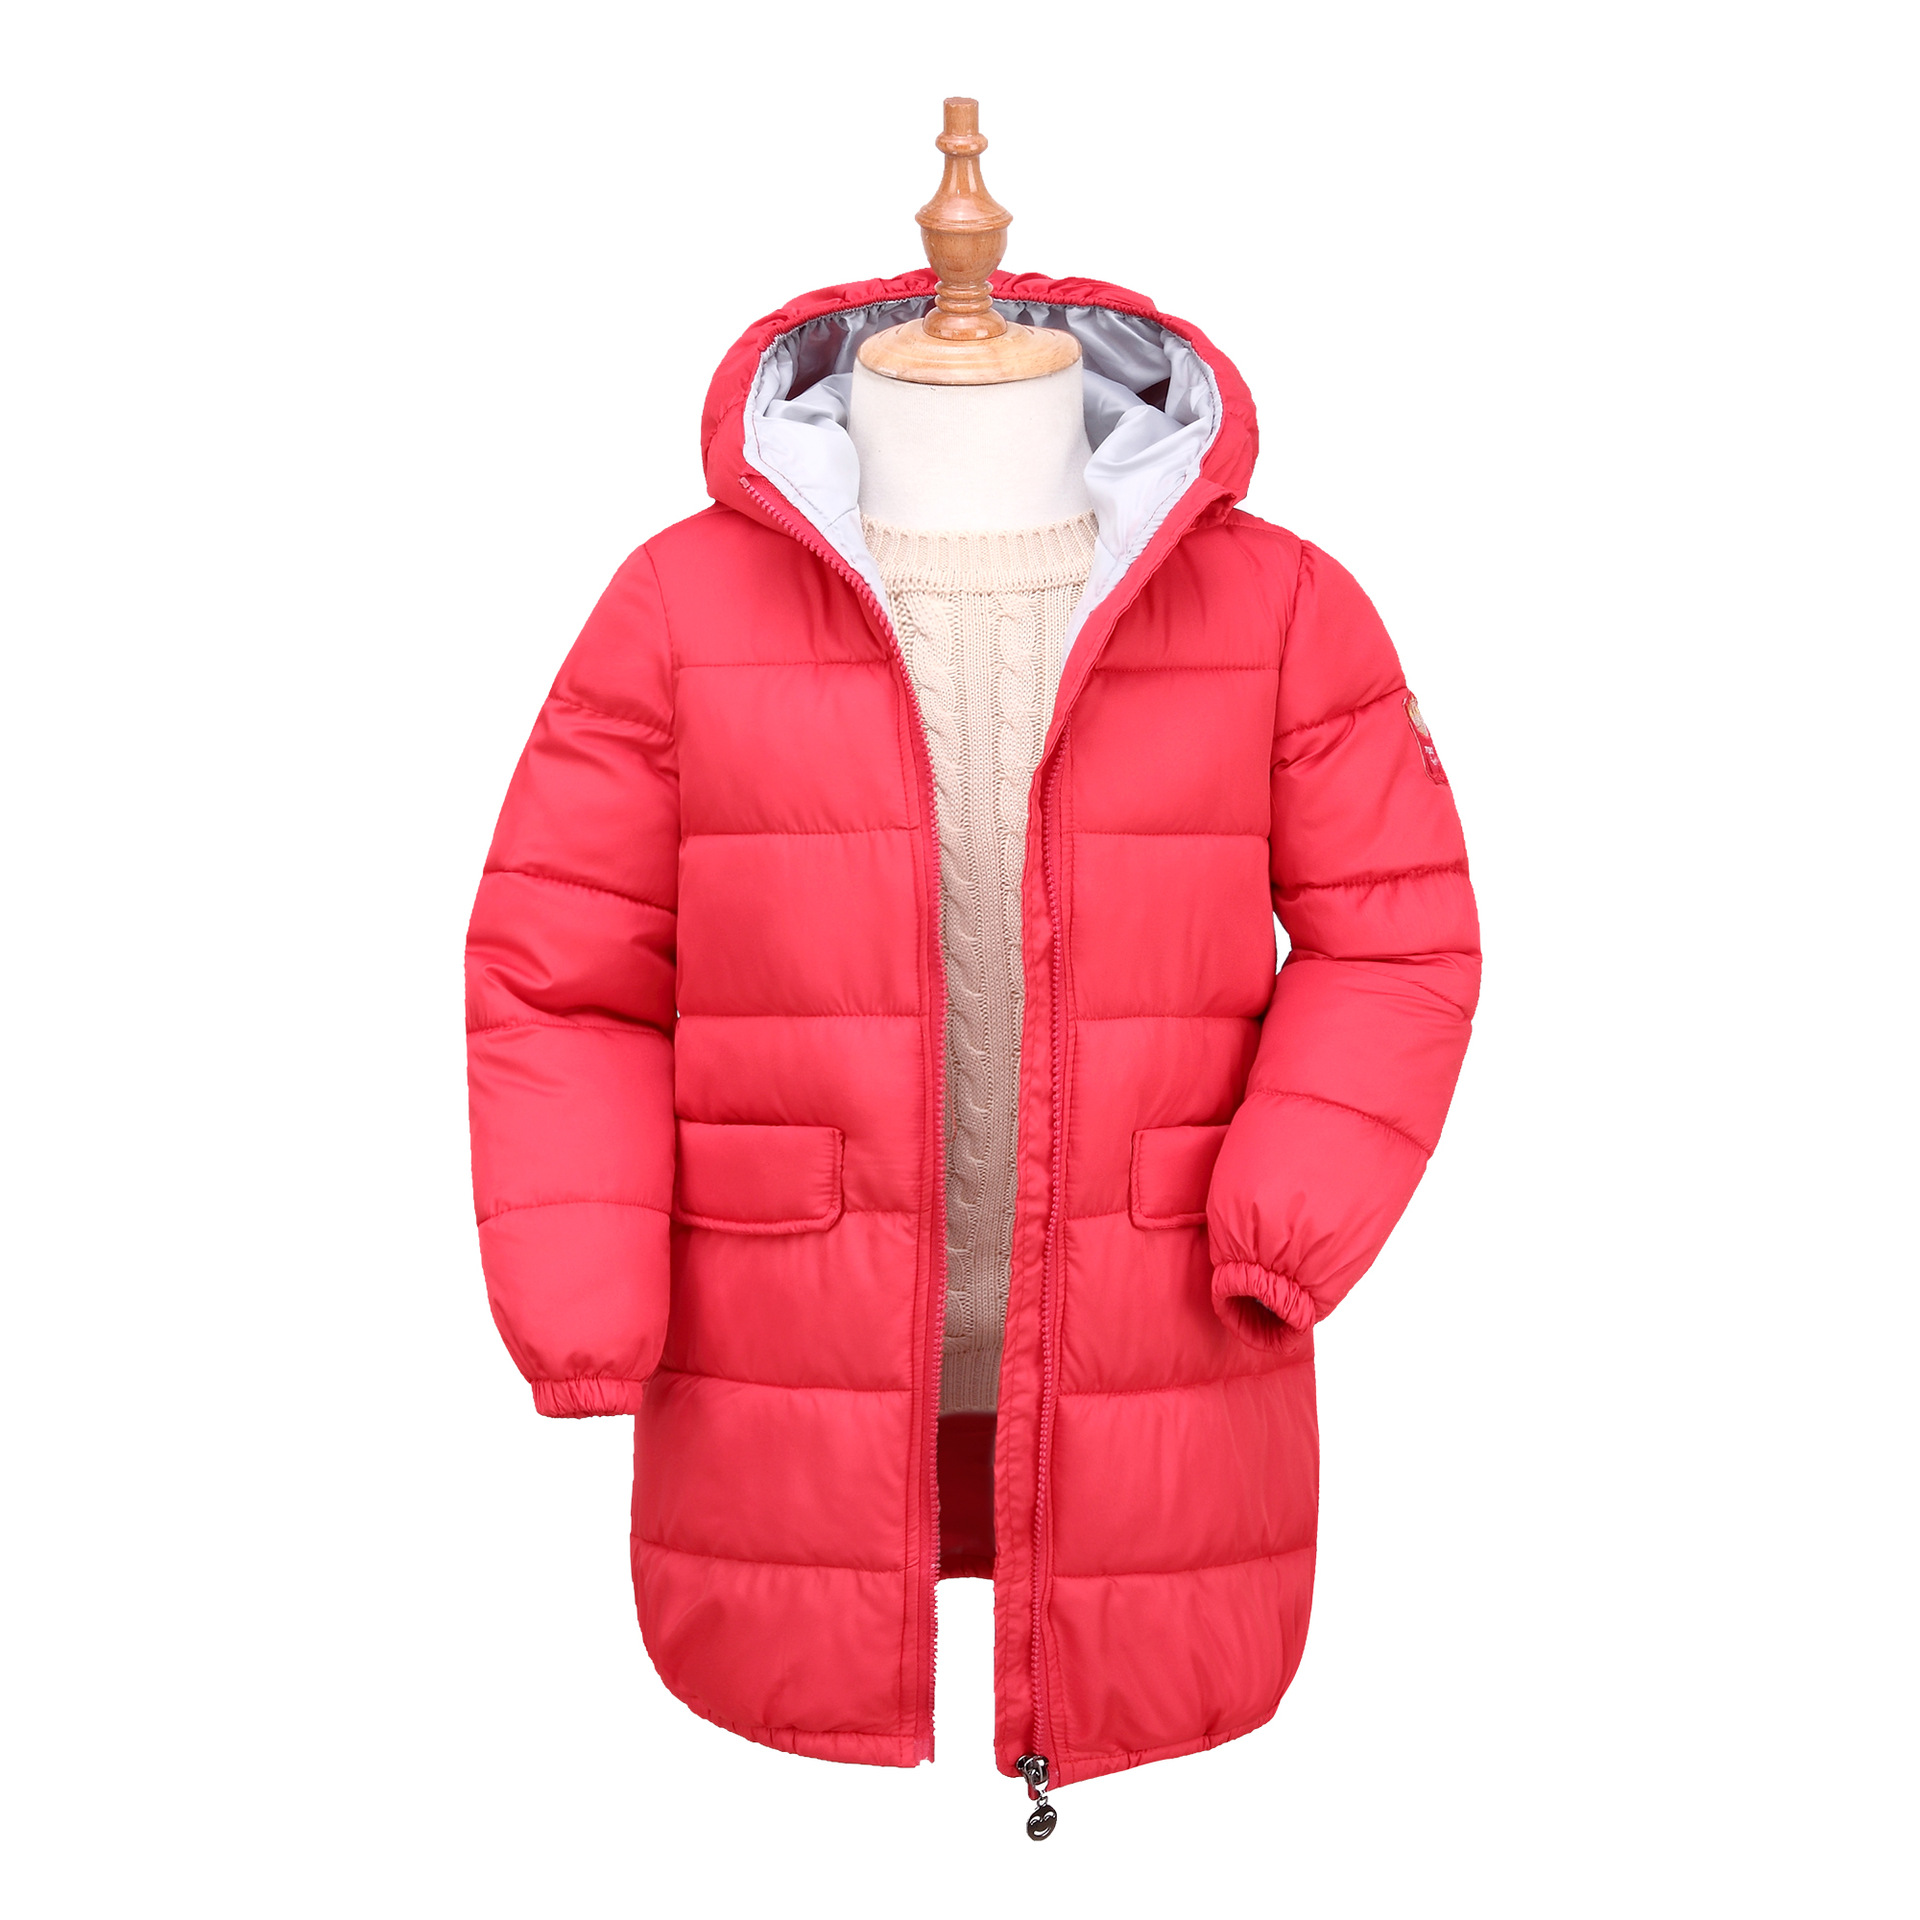 children in the long section of the cotton boy down jacket cotton girl  jacket Korean version of the jacket позиционеры для сна candide подушка угловая memory 15° 60x120 см